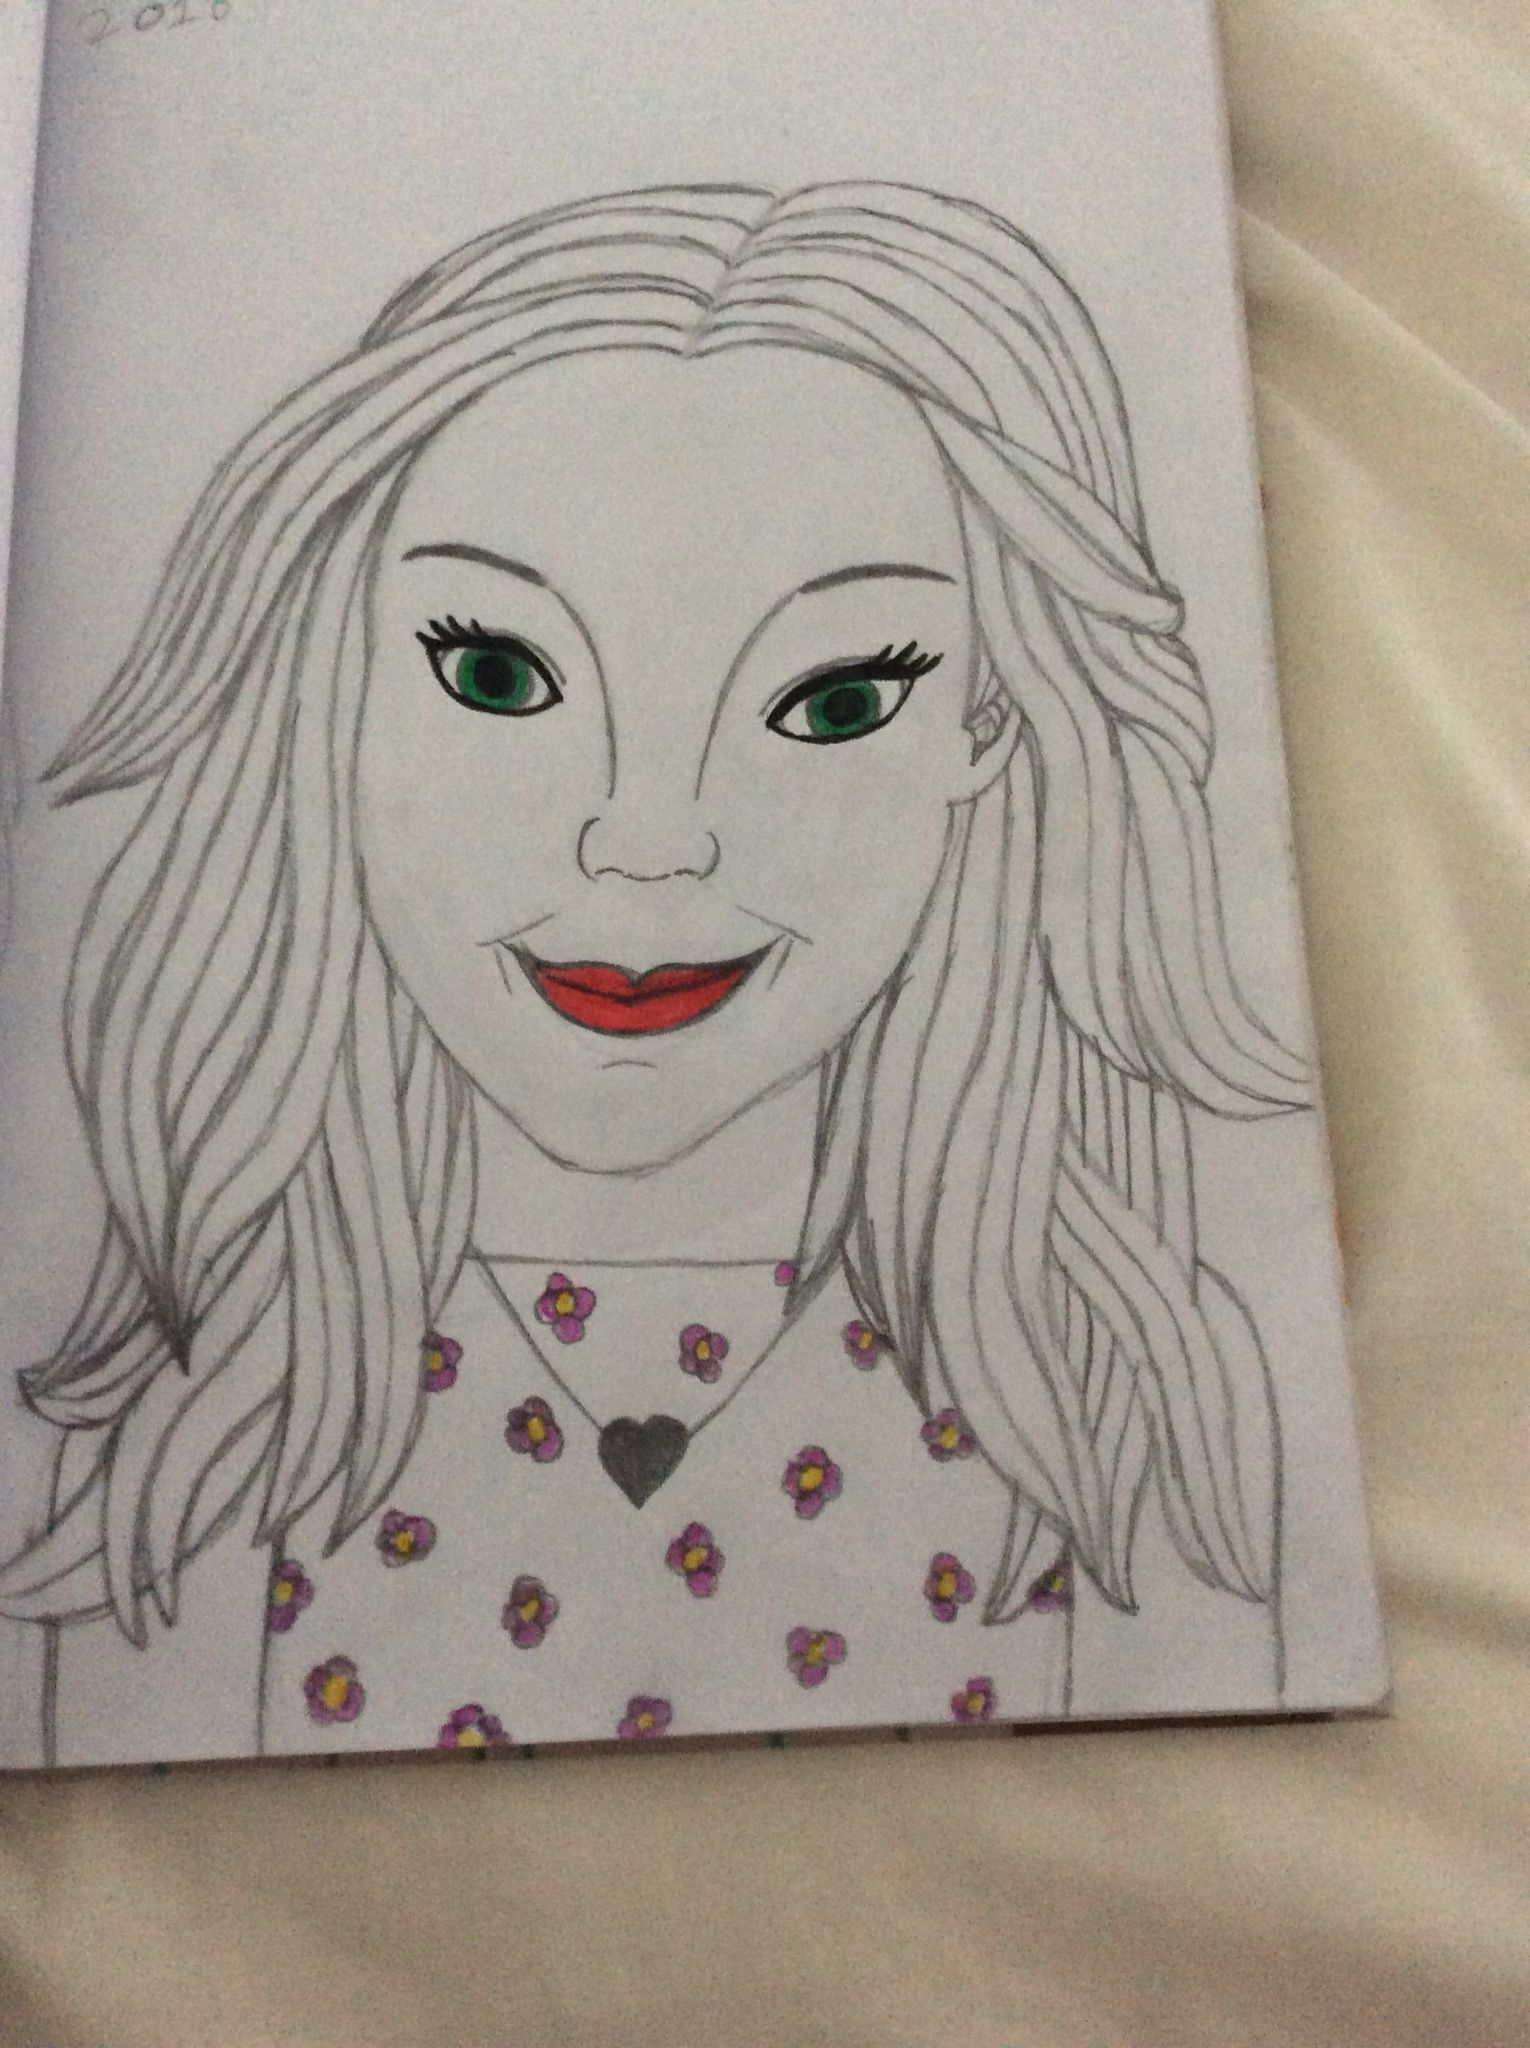 my most recent drawing of my idol dove Cameron